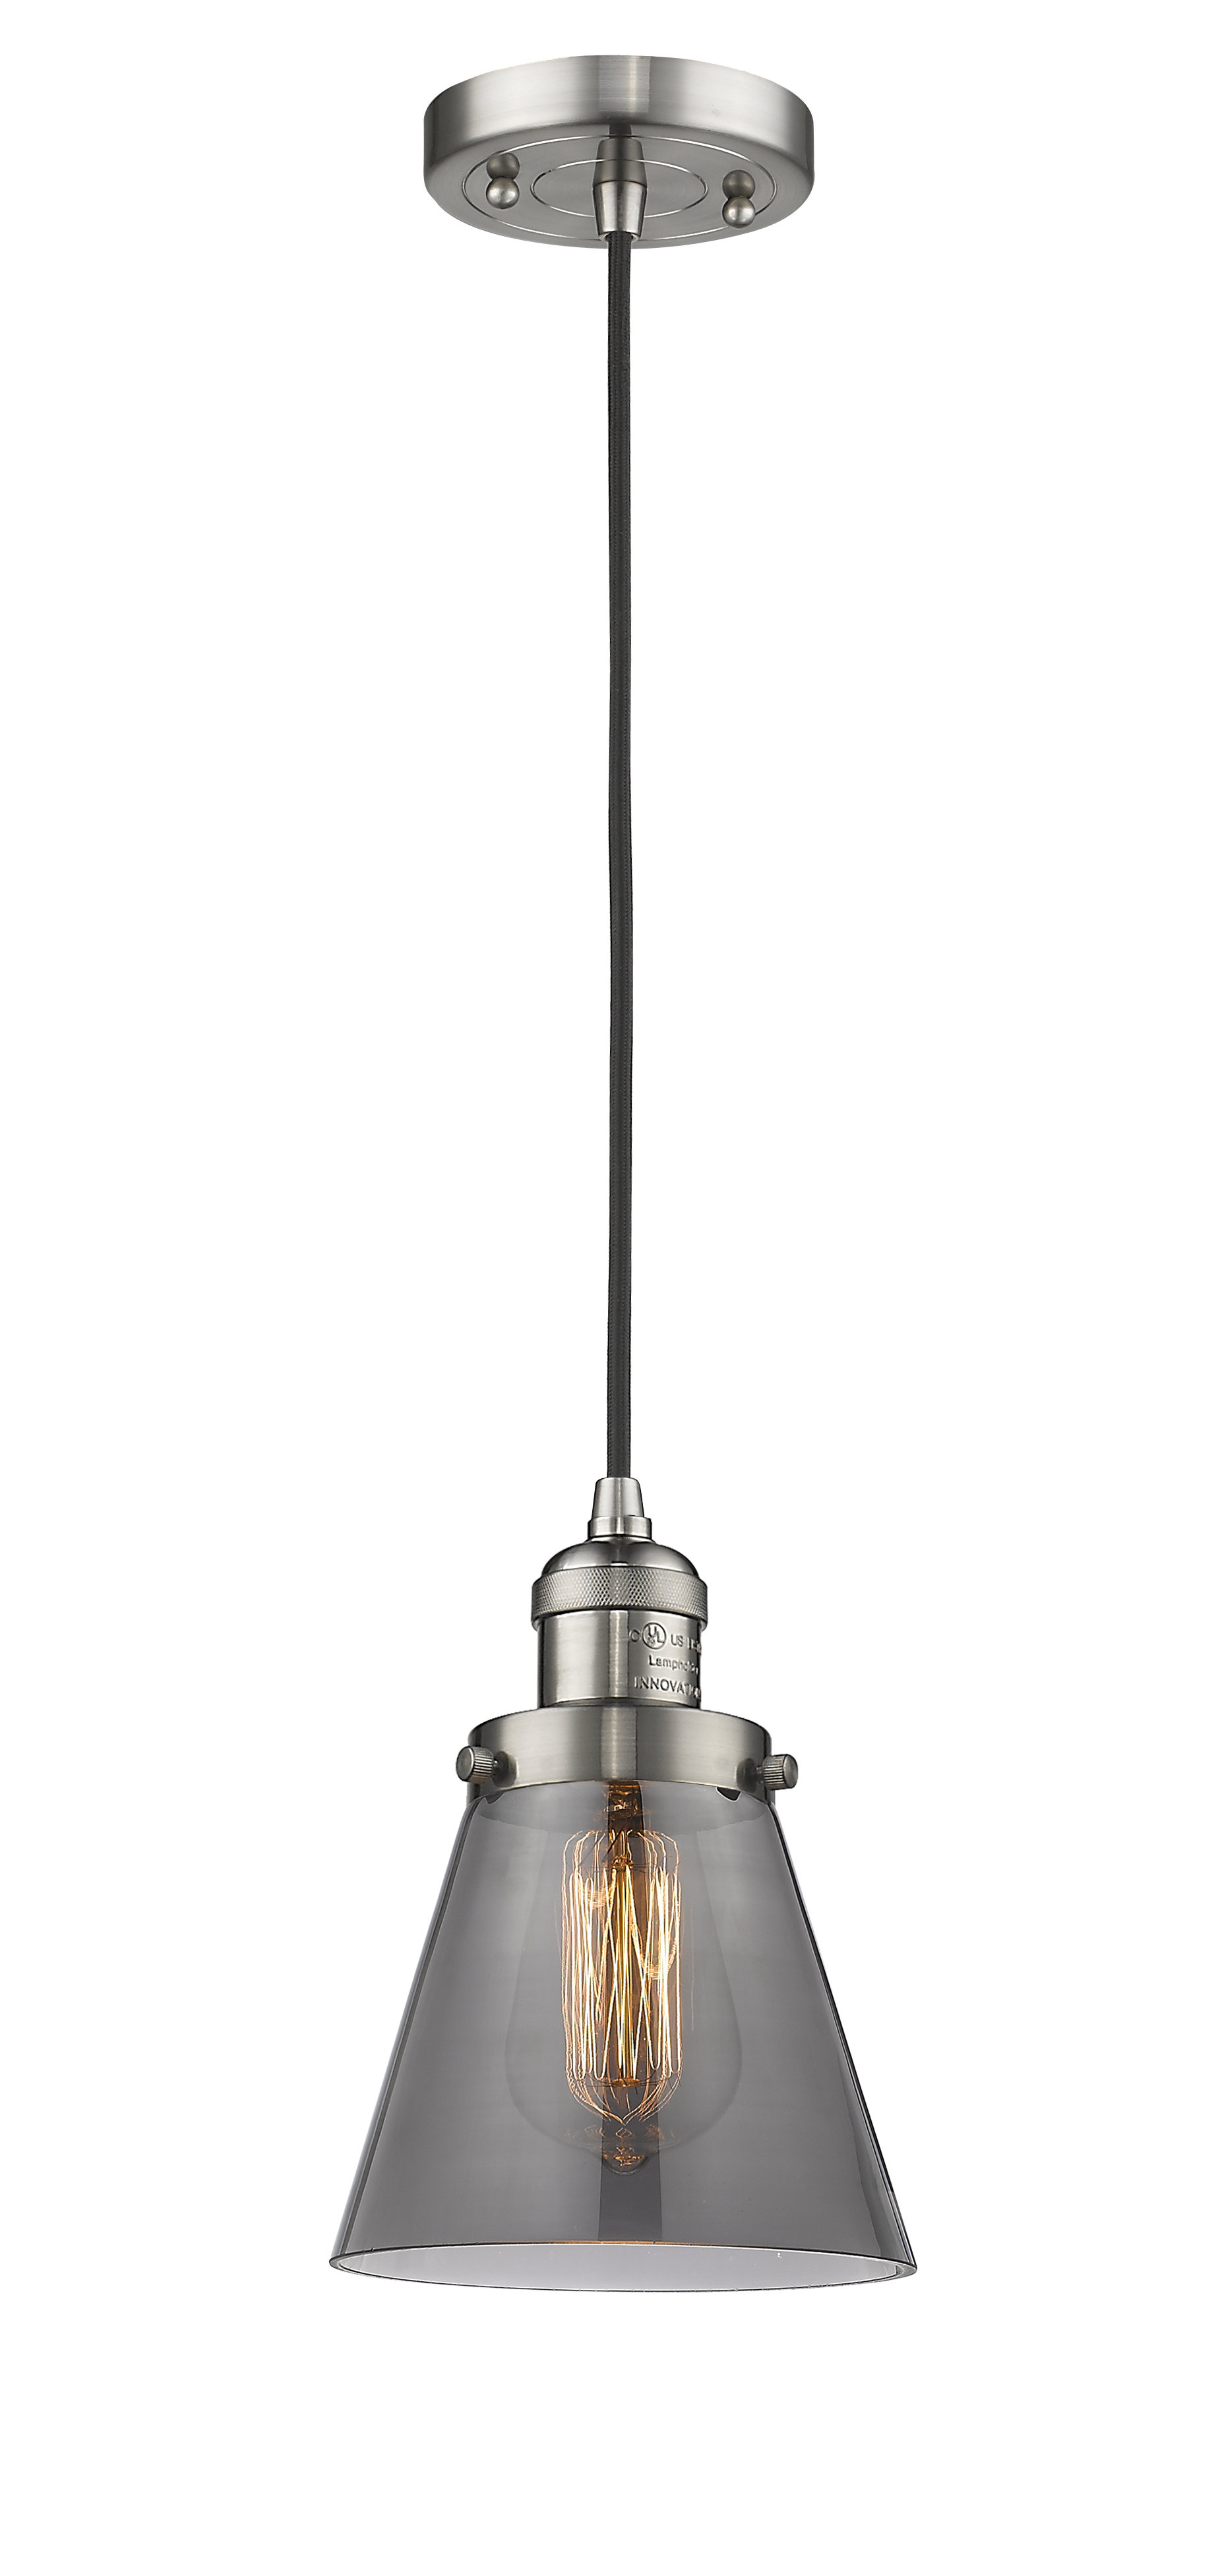 Pachna 1 Light Single Cone Pendant Throughout Sargent 1 Light Single Bell Pendants (View 21 of 30)